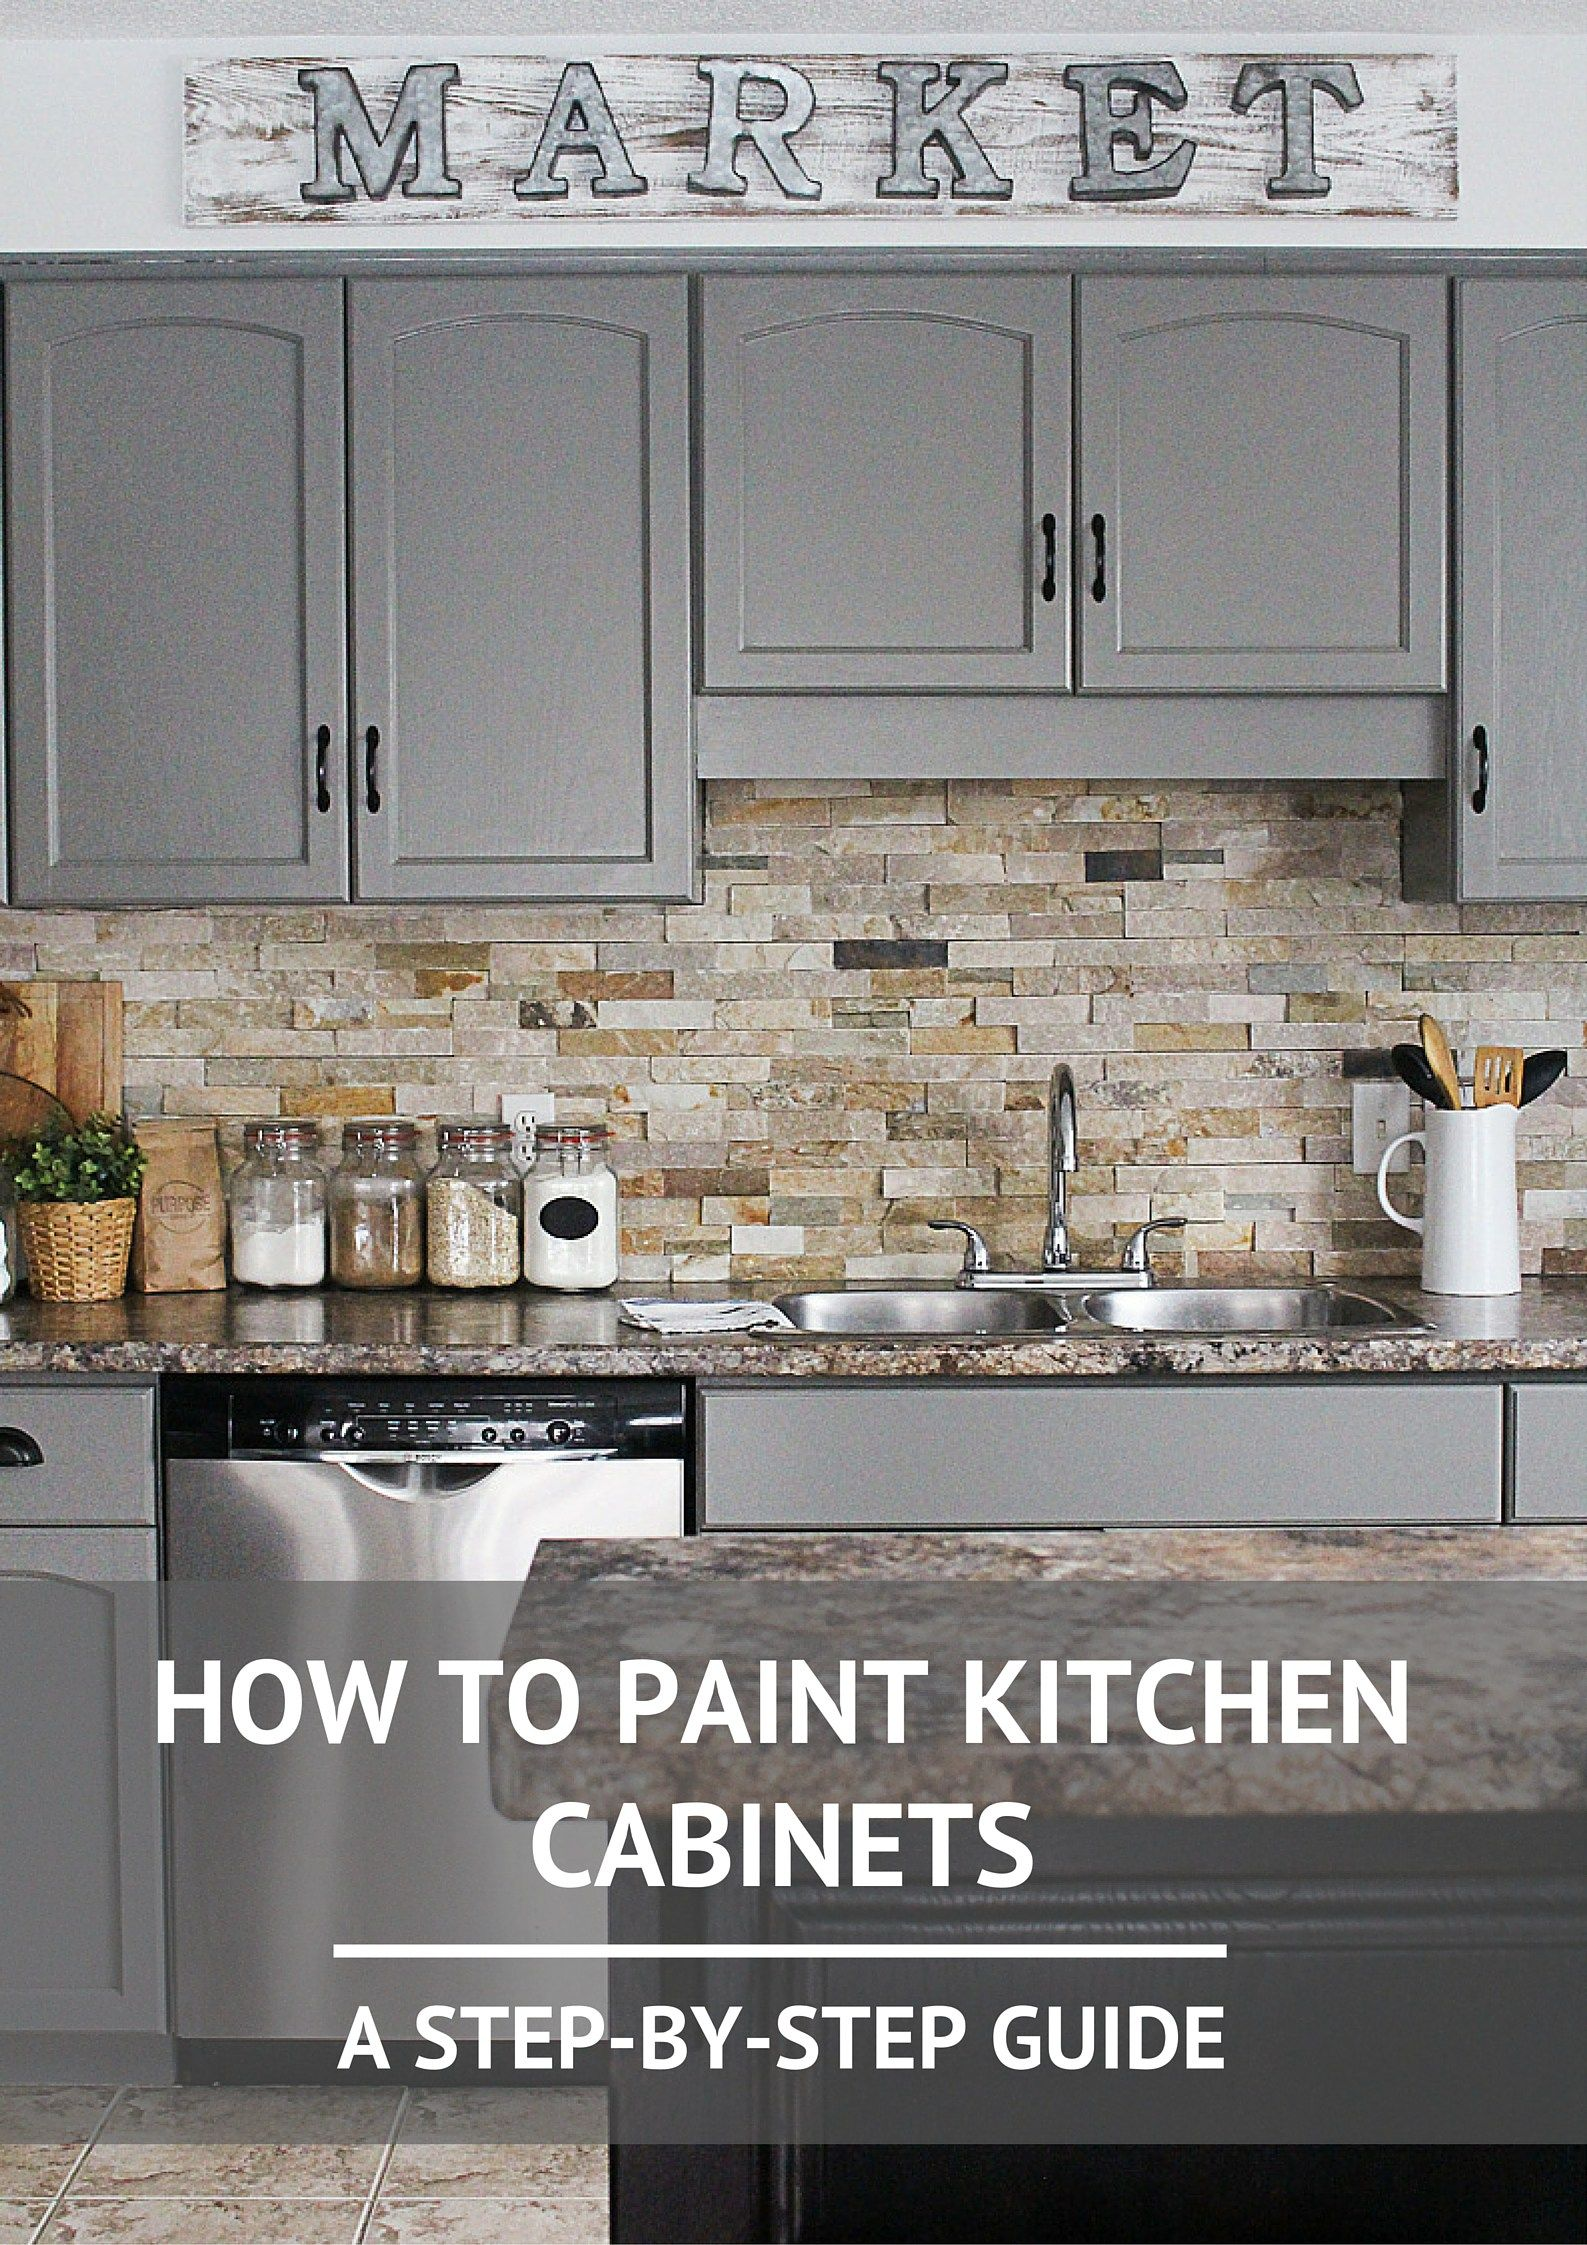 How To Paint Kitchen Cabinets A Step By Guide 2